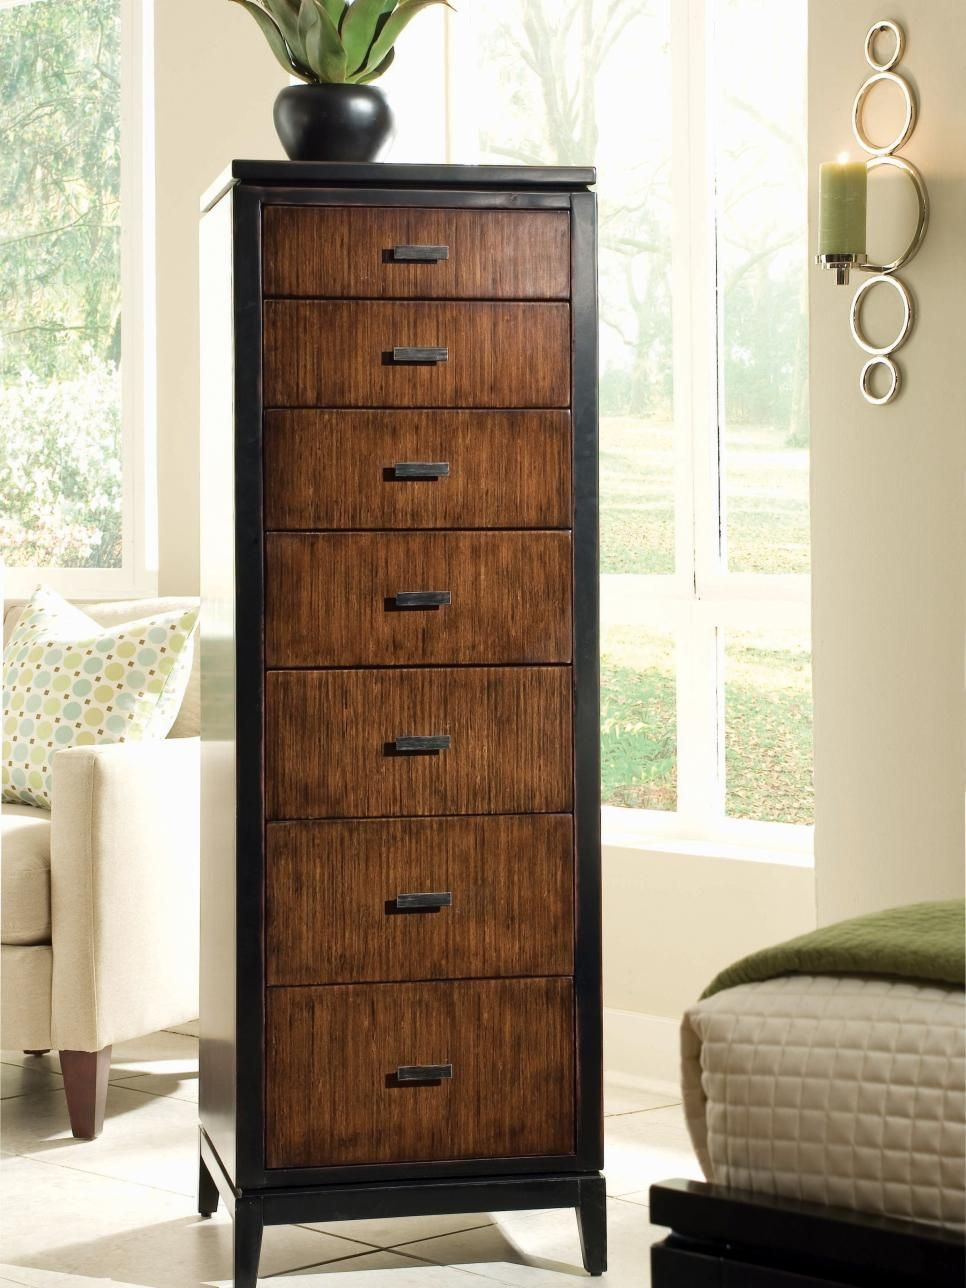 Case Goods Are Wood Furniture Pieces That Provide Storage Space. Often Used  In Dining Rooms